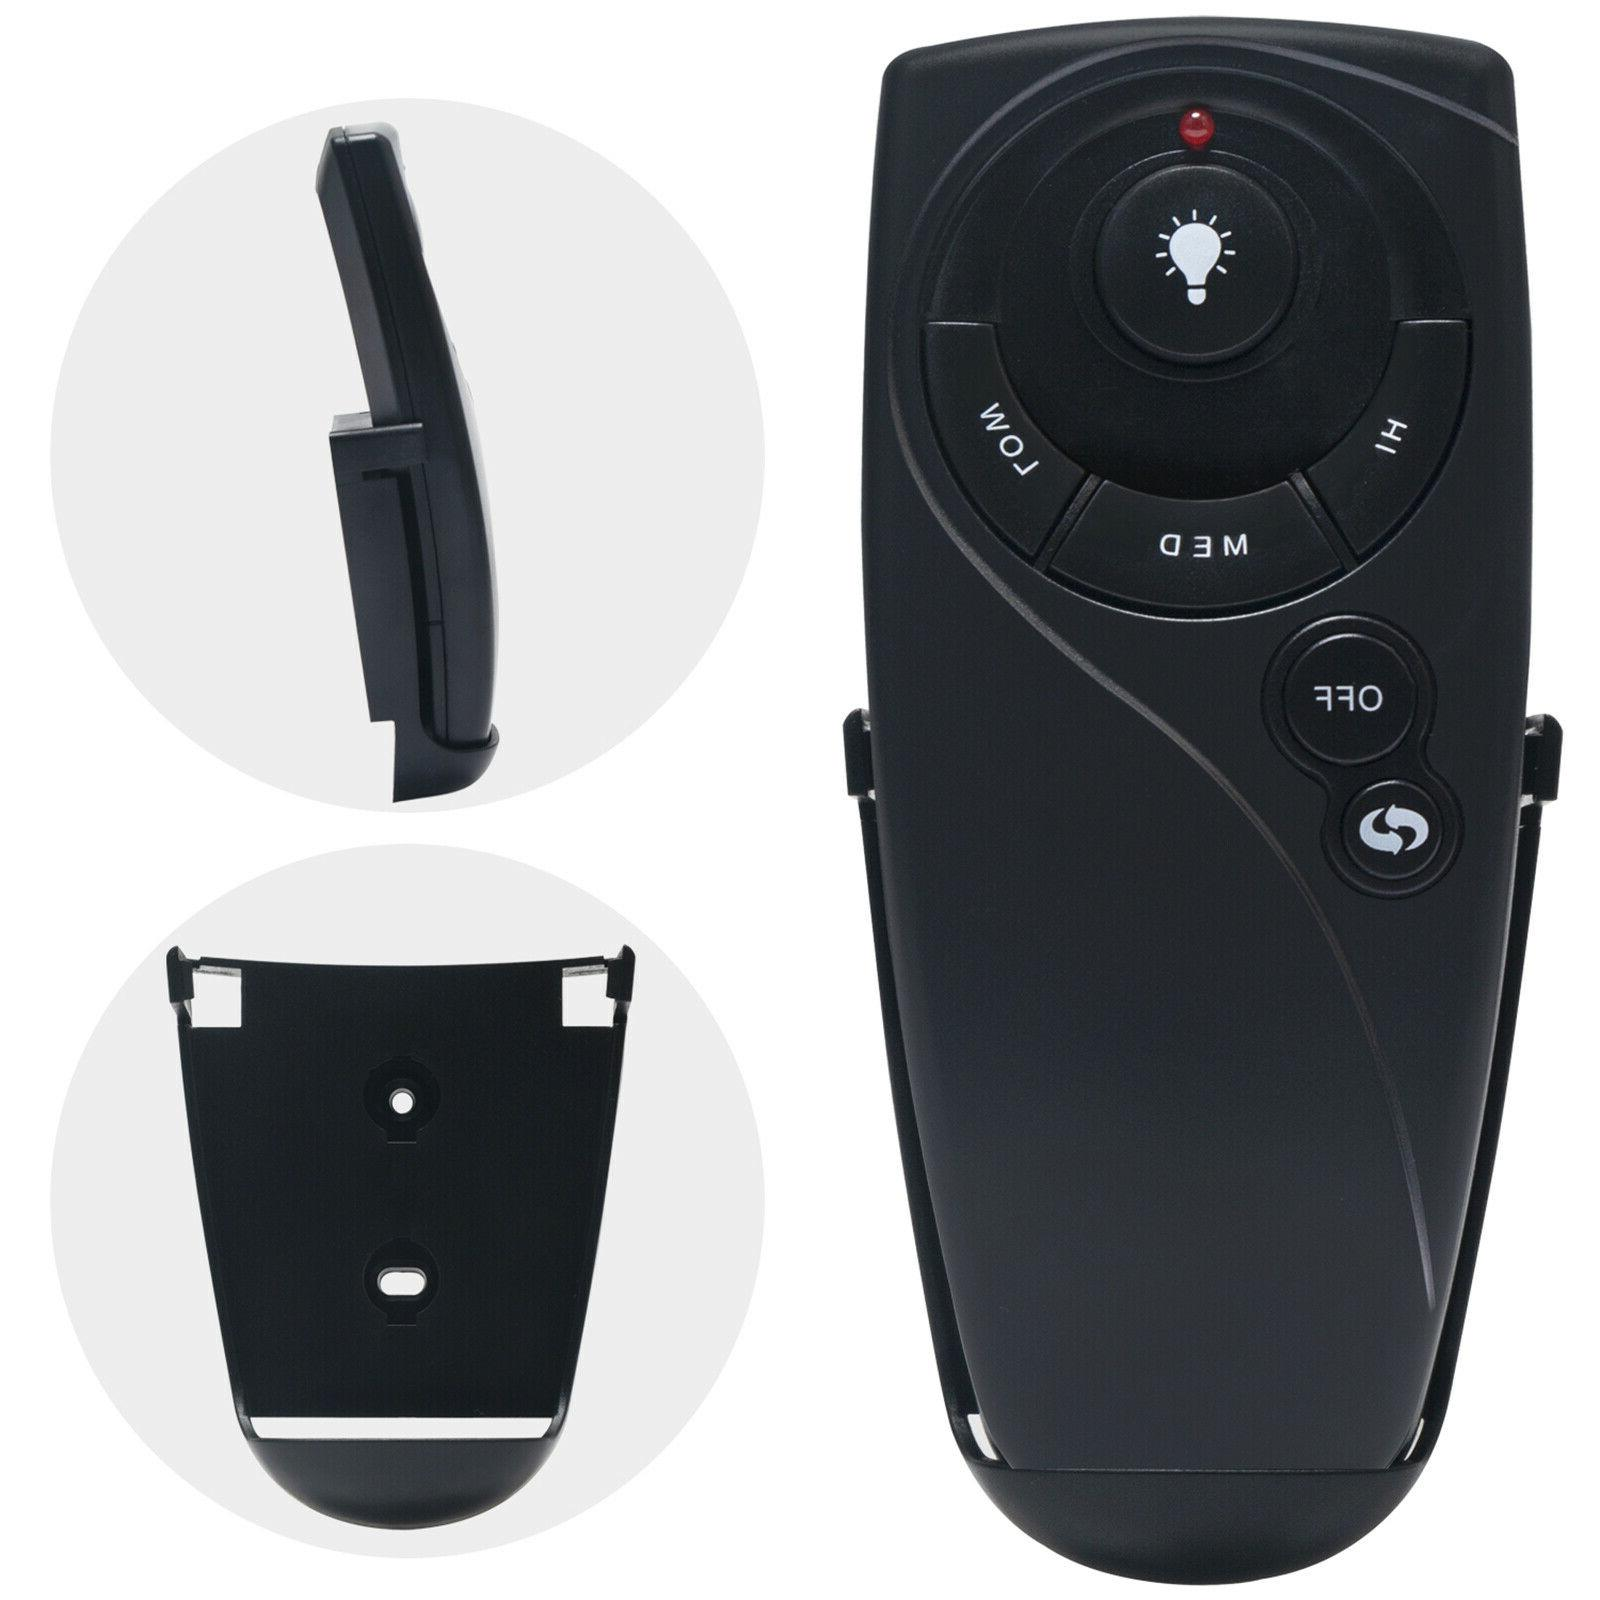 New UC7083T Remote for Hampton Bay to Control Ceiling Fan Sp